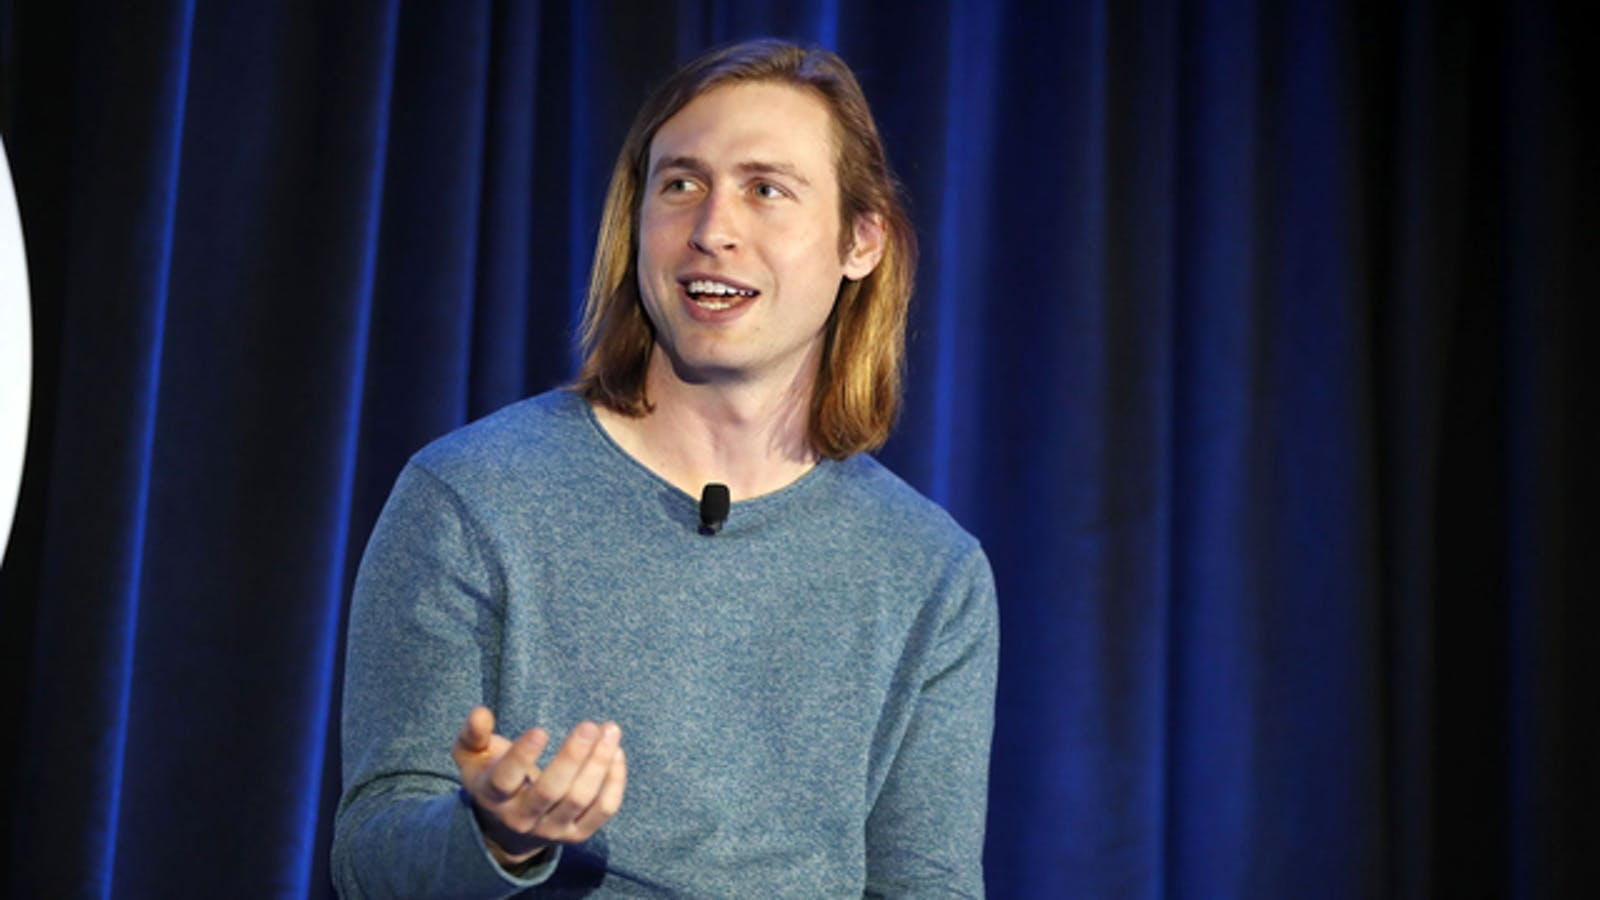 Zach Perret, CEO and co-founder of Plaid, spoke during the Silicon Slopes Tech Summit in Salt Lake City last year. Photo: Bloomberg